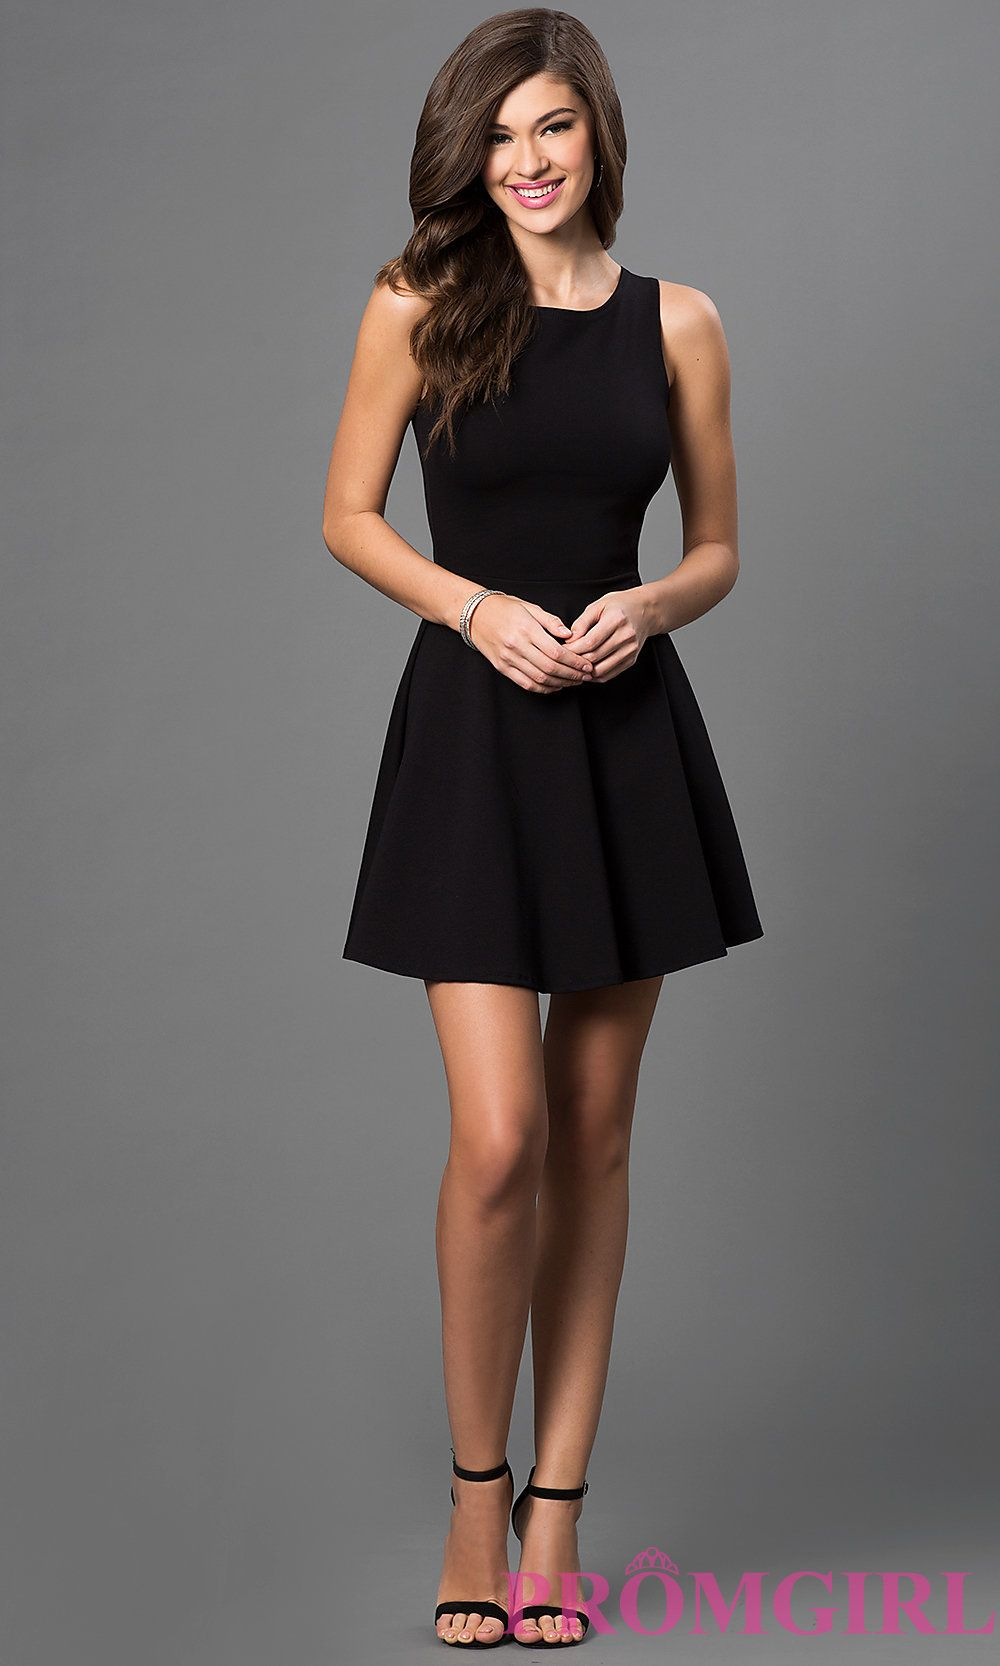 Sleeveless Little Black Dress with Cut Out Back | Simple, Sweet ...